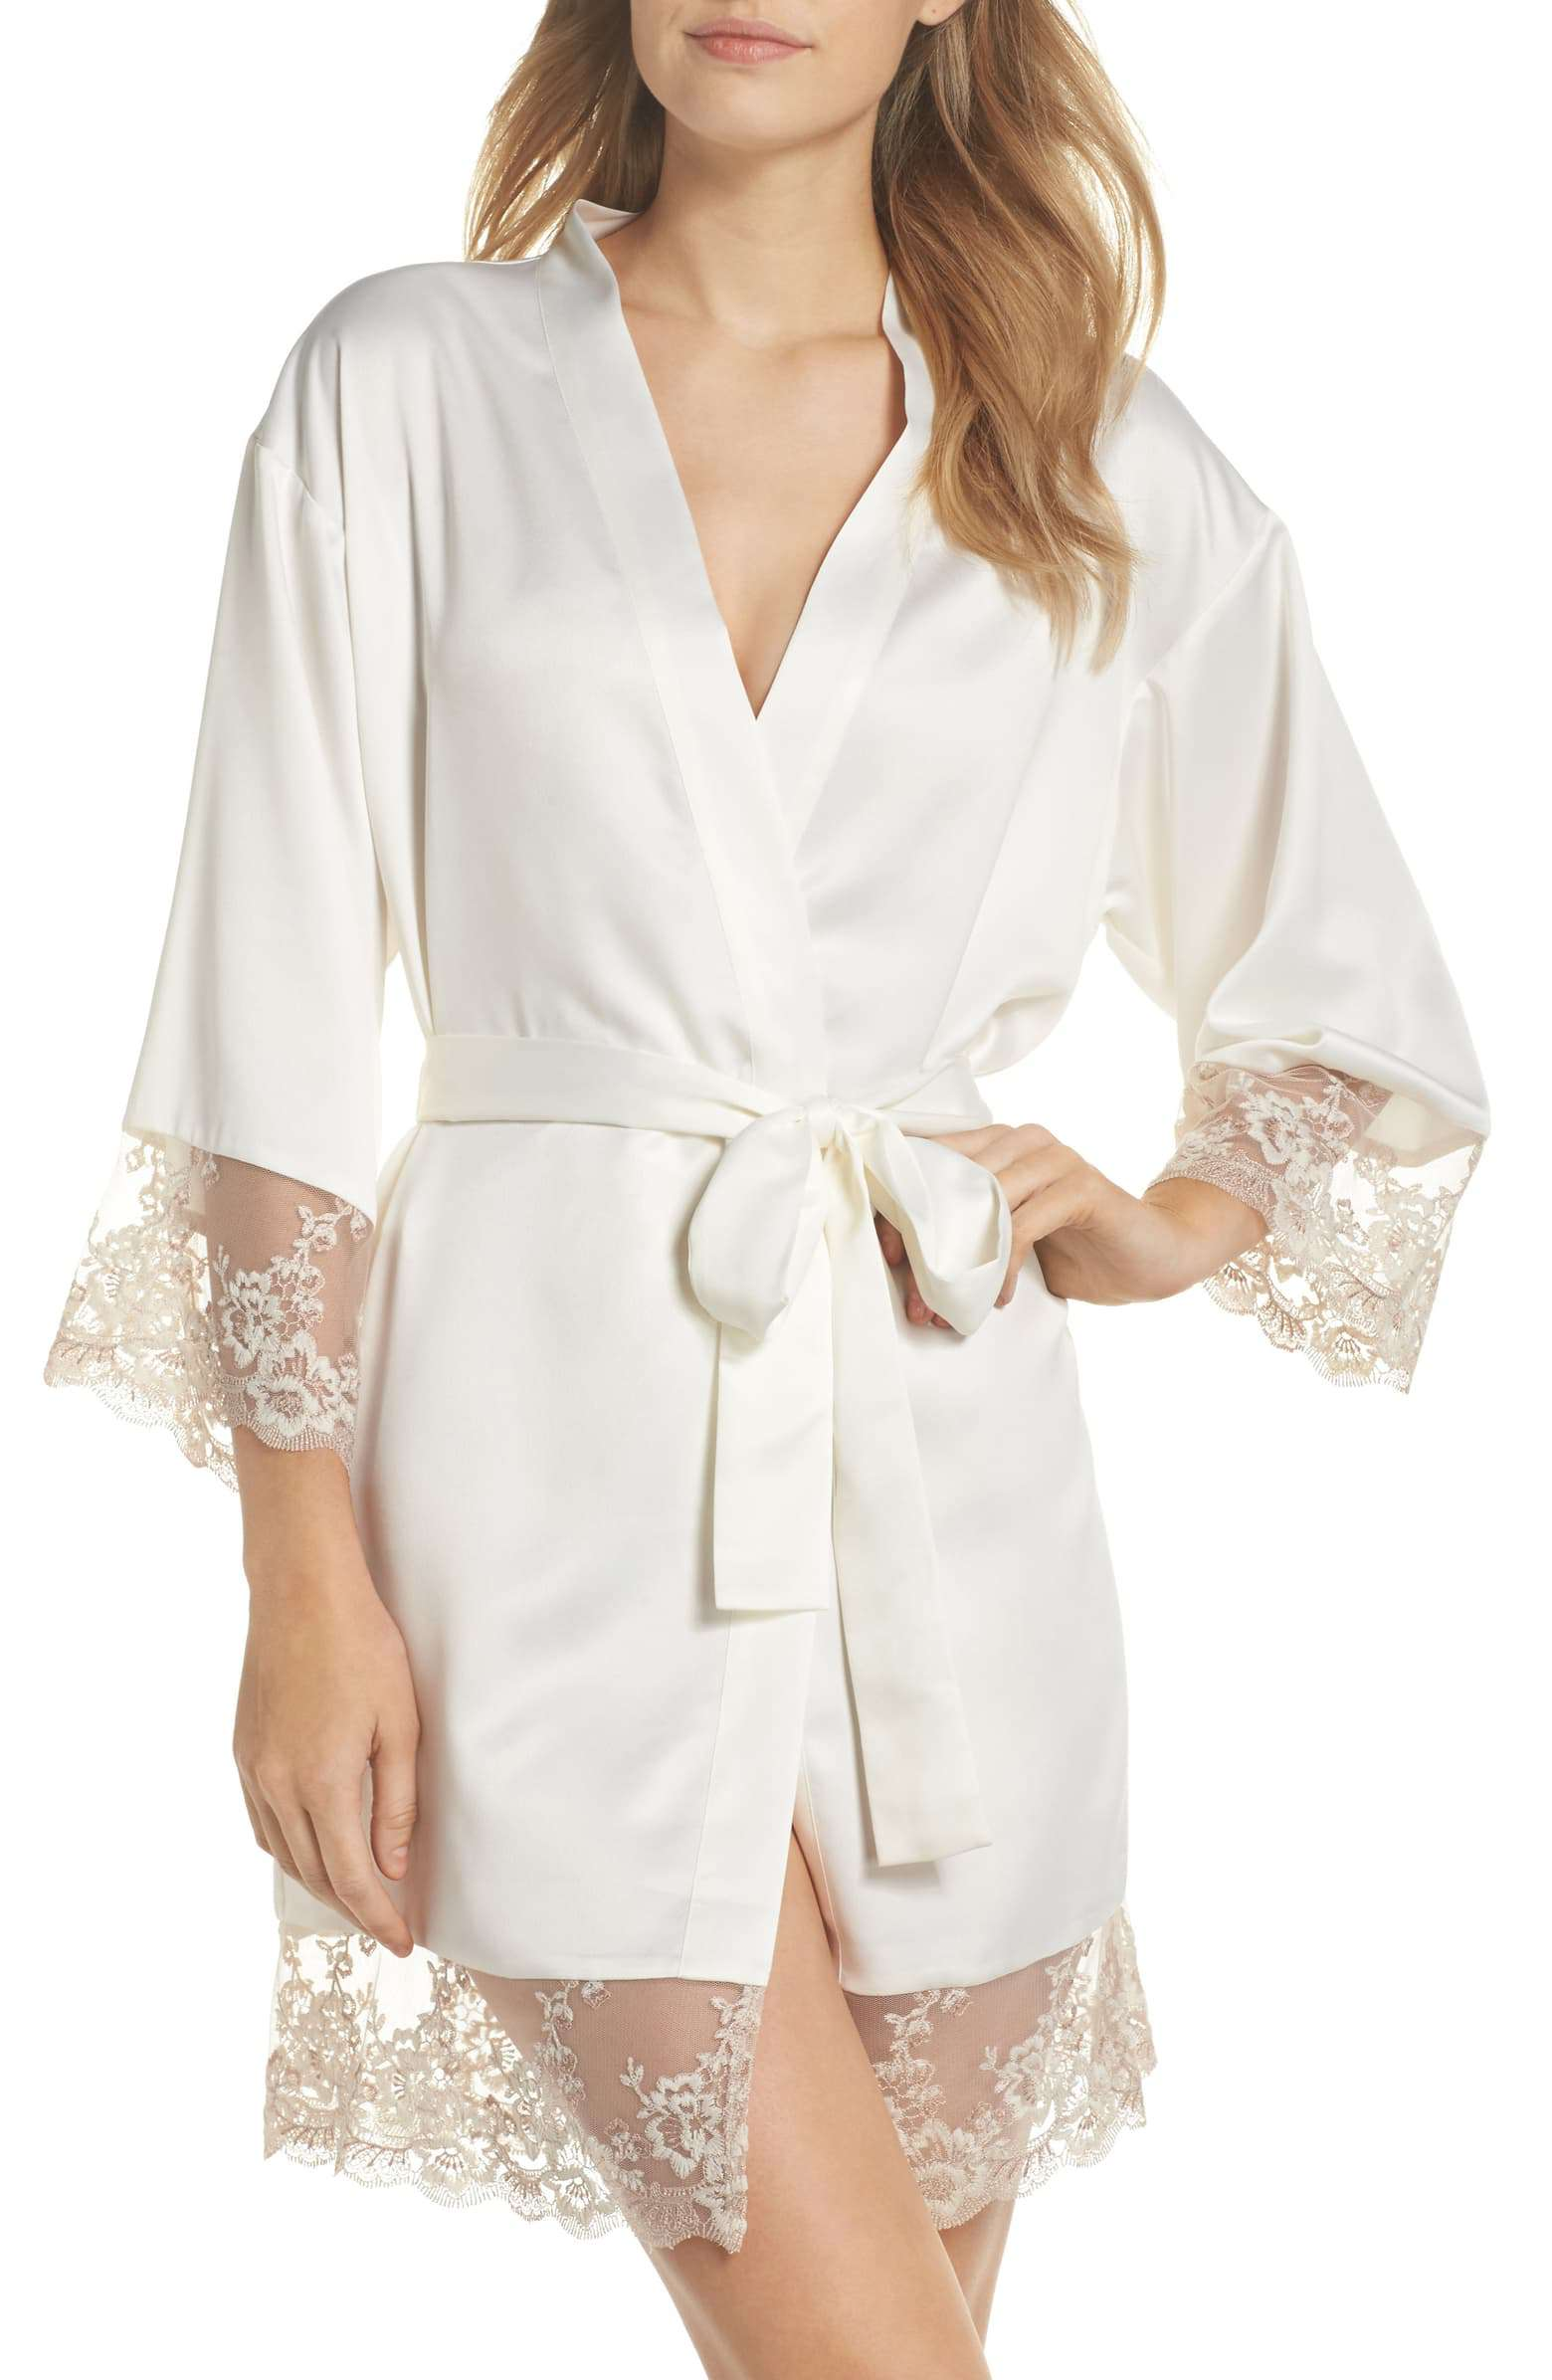 The Best Bridesmaid Robes For Your Bridal Party in 2020 2